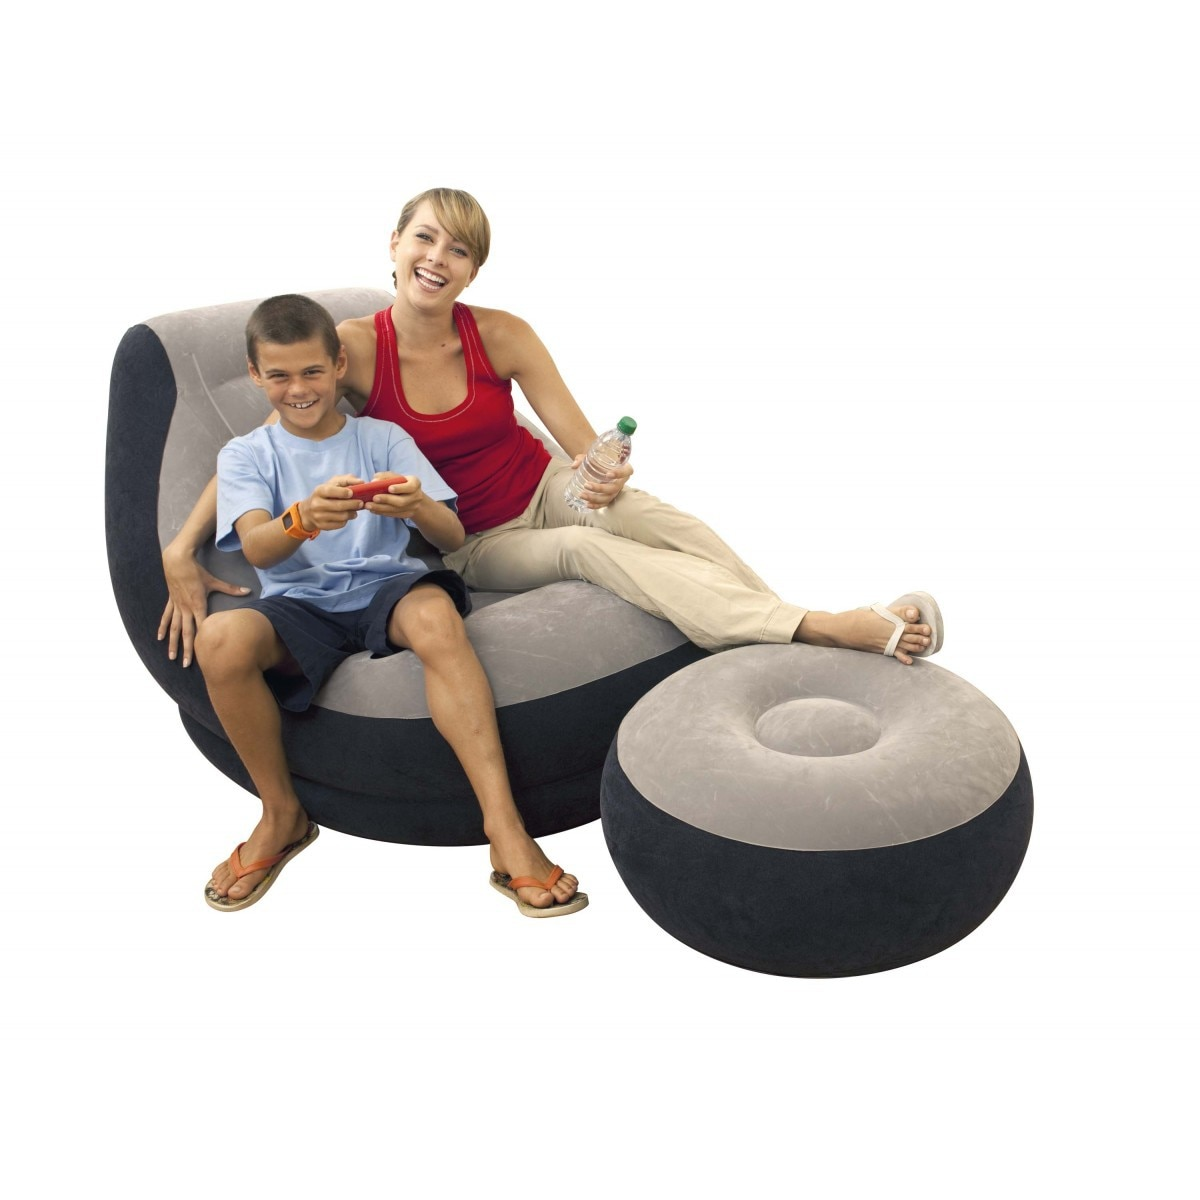 lazy inflatable bed home new air single two people both use black wave flocking bed factory creative home wholesale air soa beds Child Bed Camping Clamshell Chair Bed Bed Fishing Chair Lazy Flocking Inflatable Sofa Suit Thickened Single Lunch Break Chair